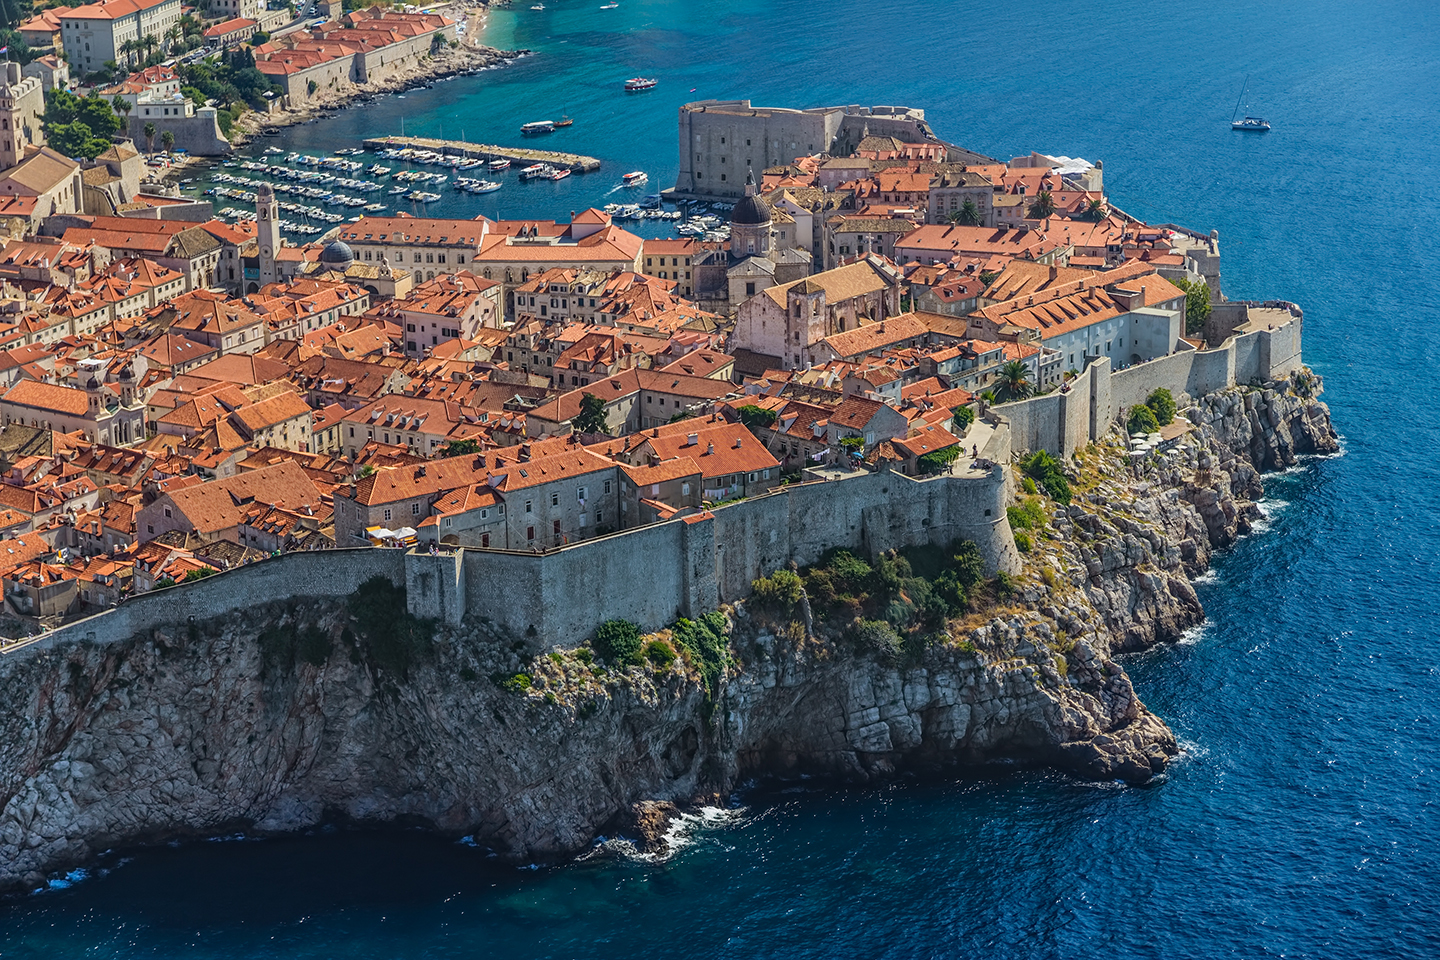 Dubrovnik from the sea